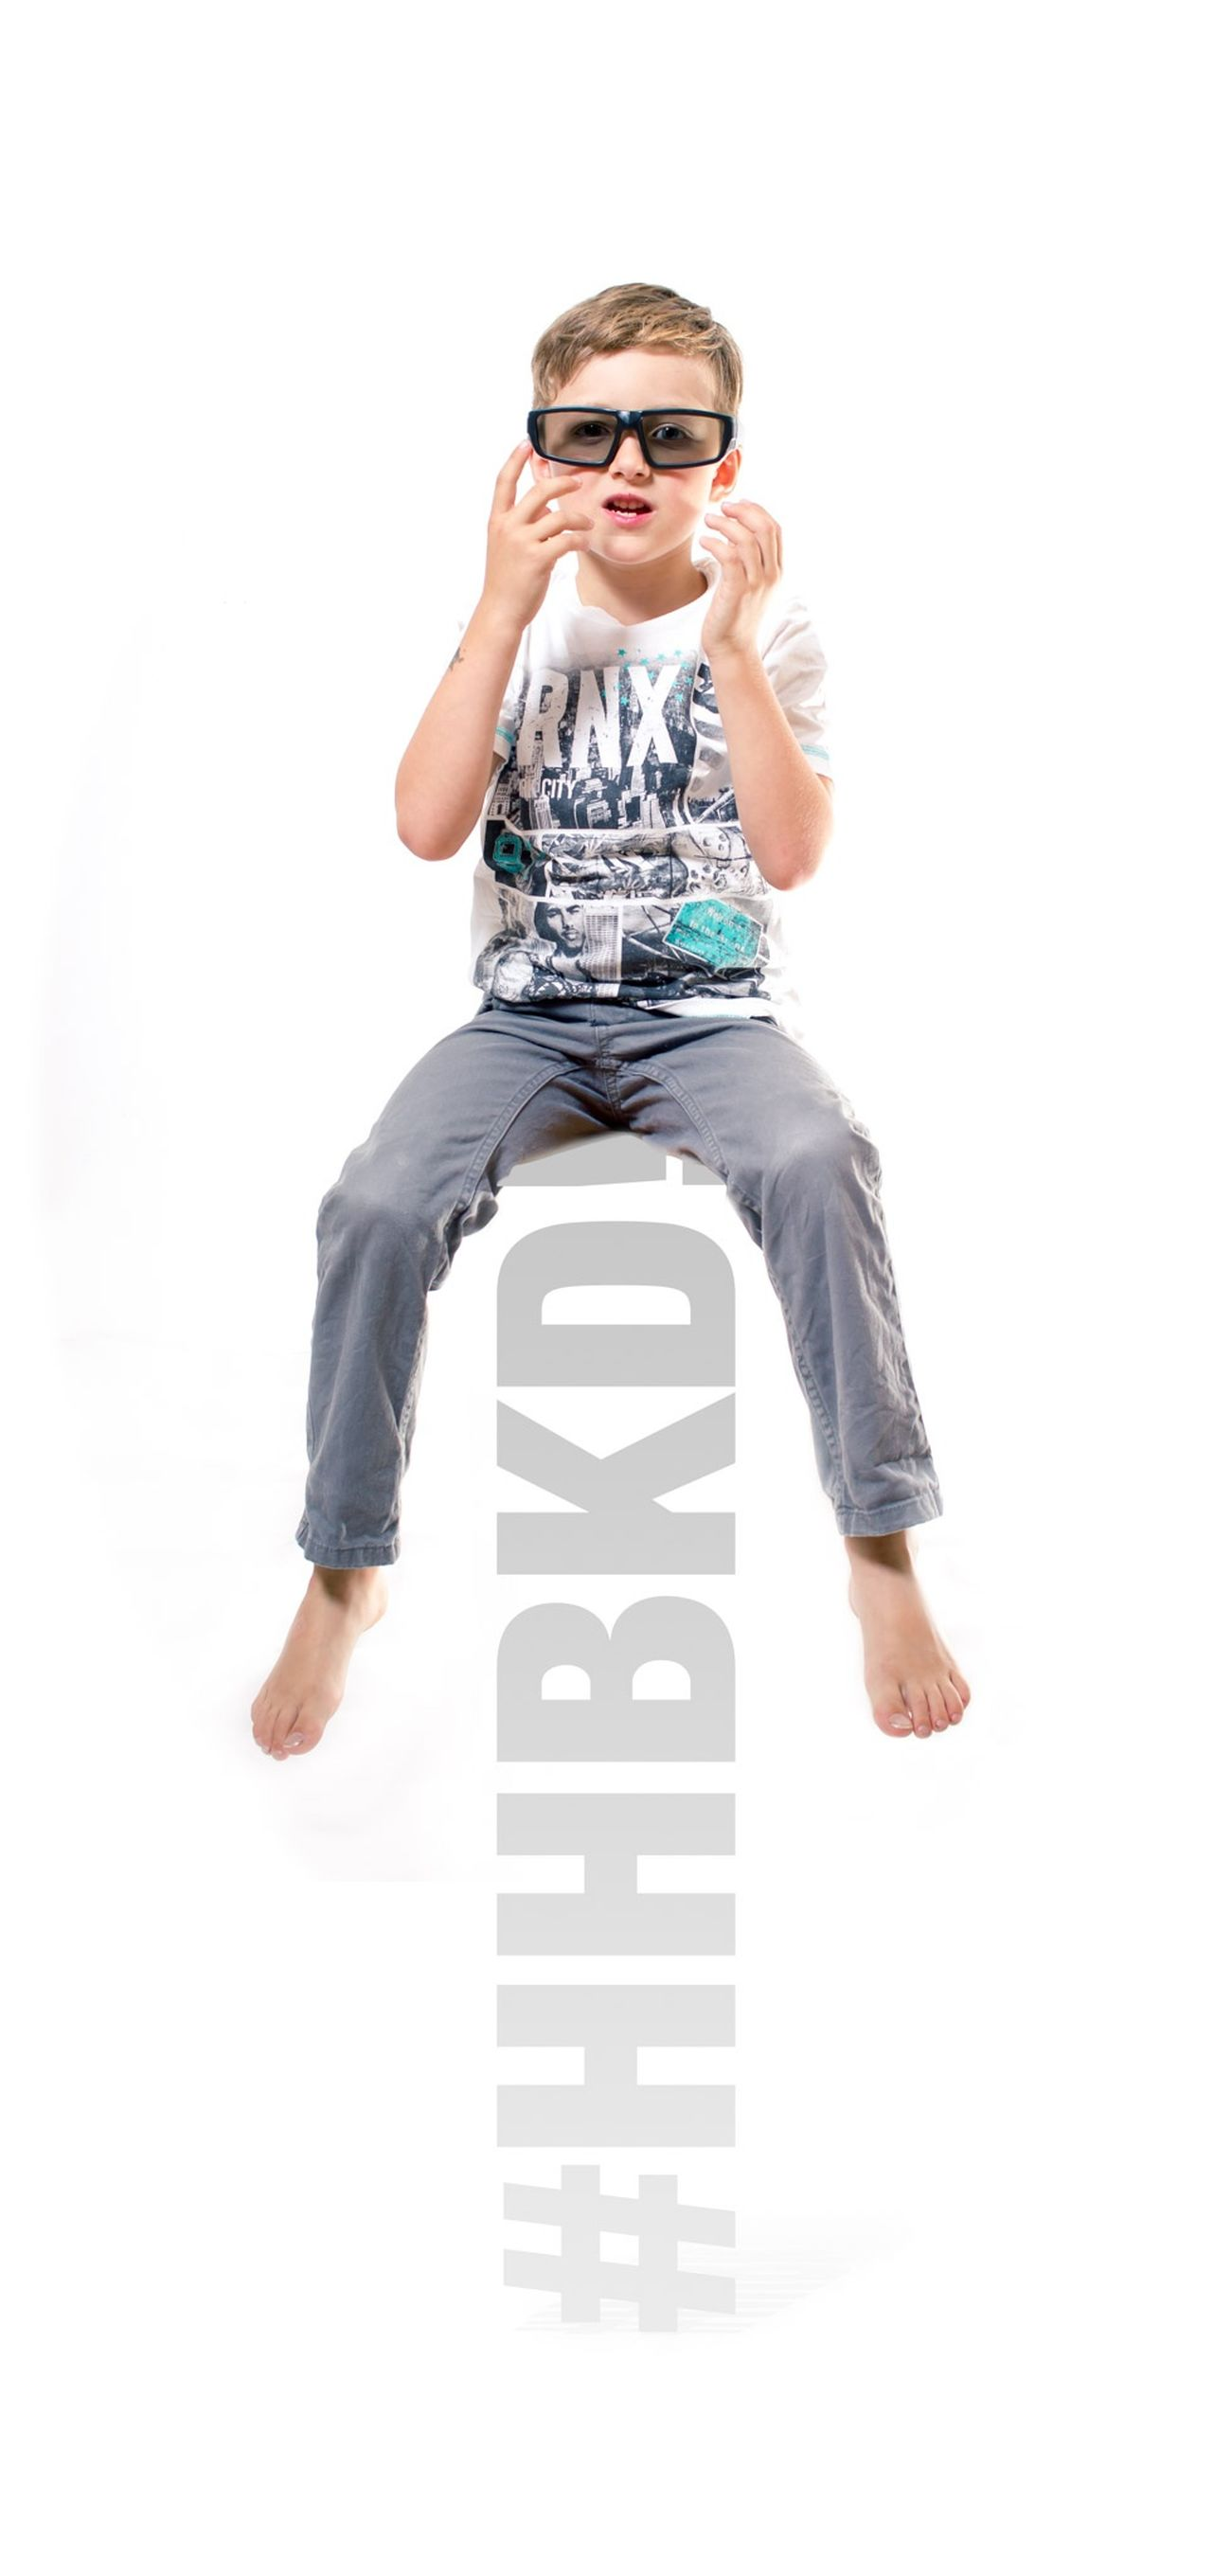 HipHop Breakdance Star Kid EyeEm Best Shots Hhbkd